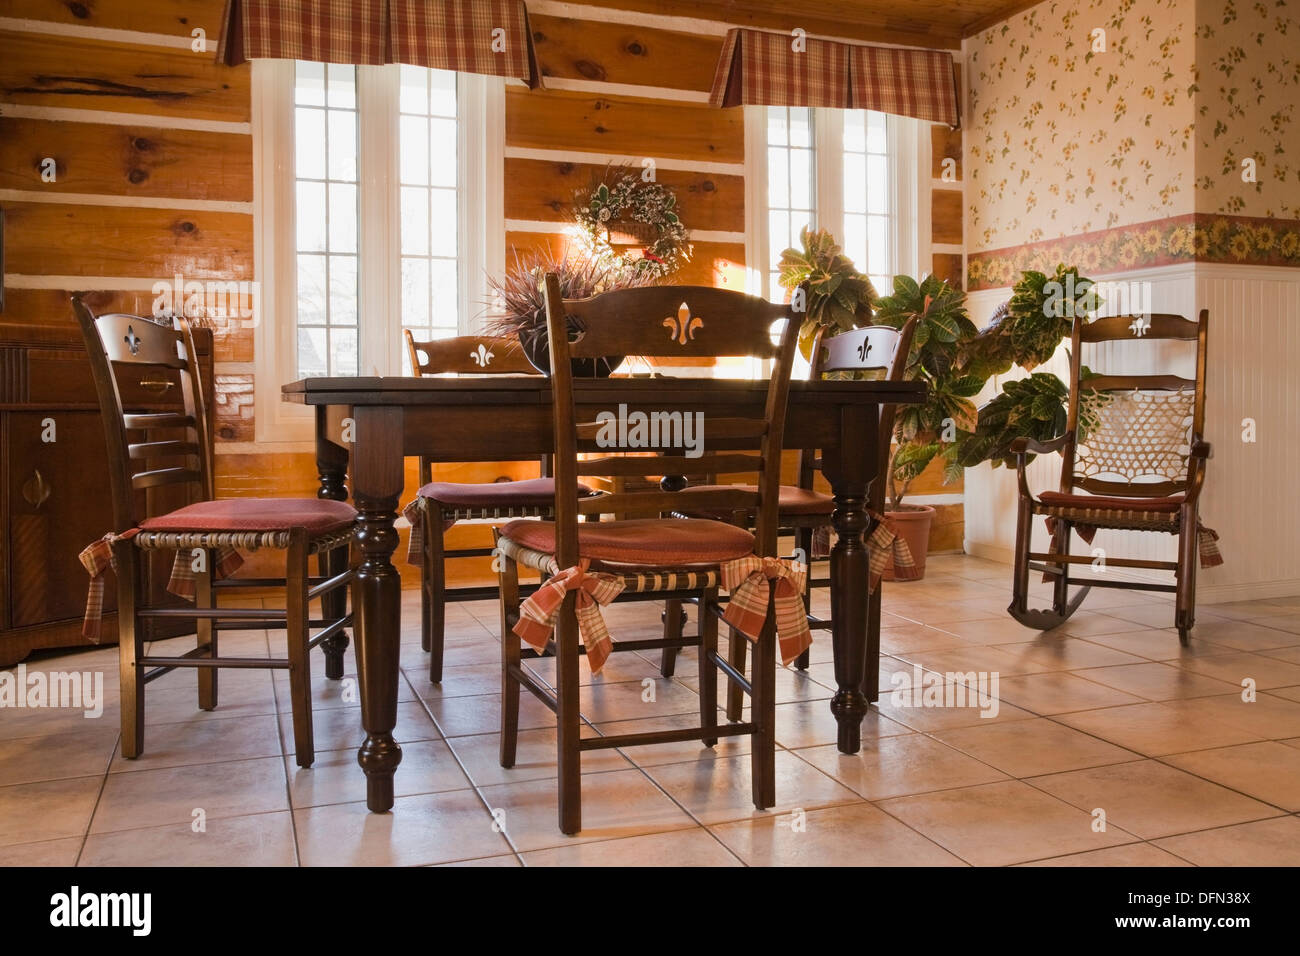 Antique style dining table and chairs in the dining room of a 1978  reproduction of an old Canadiana cottage style log and - Antique Style Dining Table And Chairs In The Dining Room Of A 1978